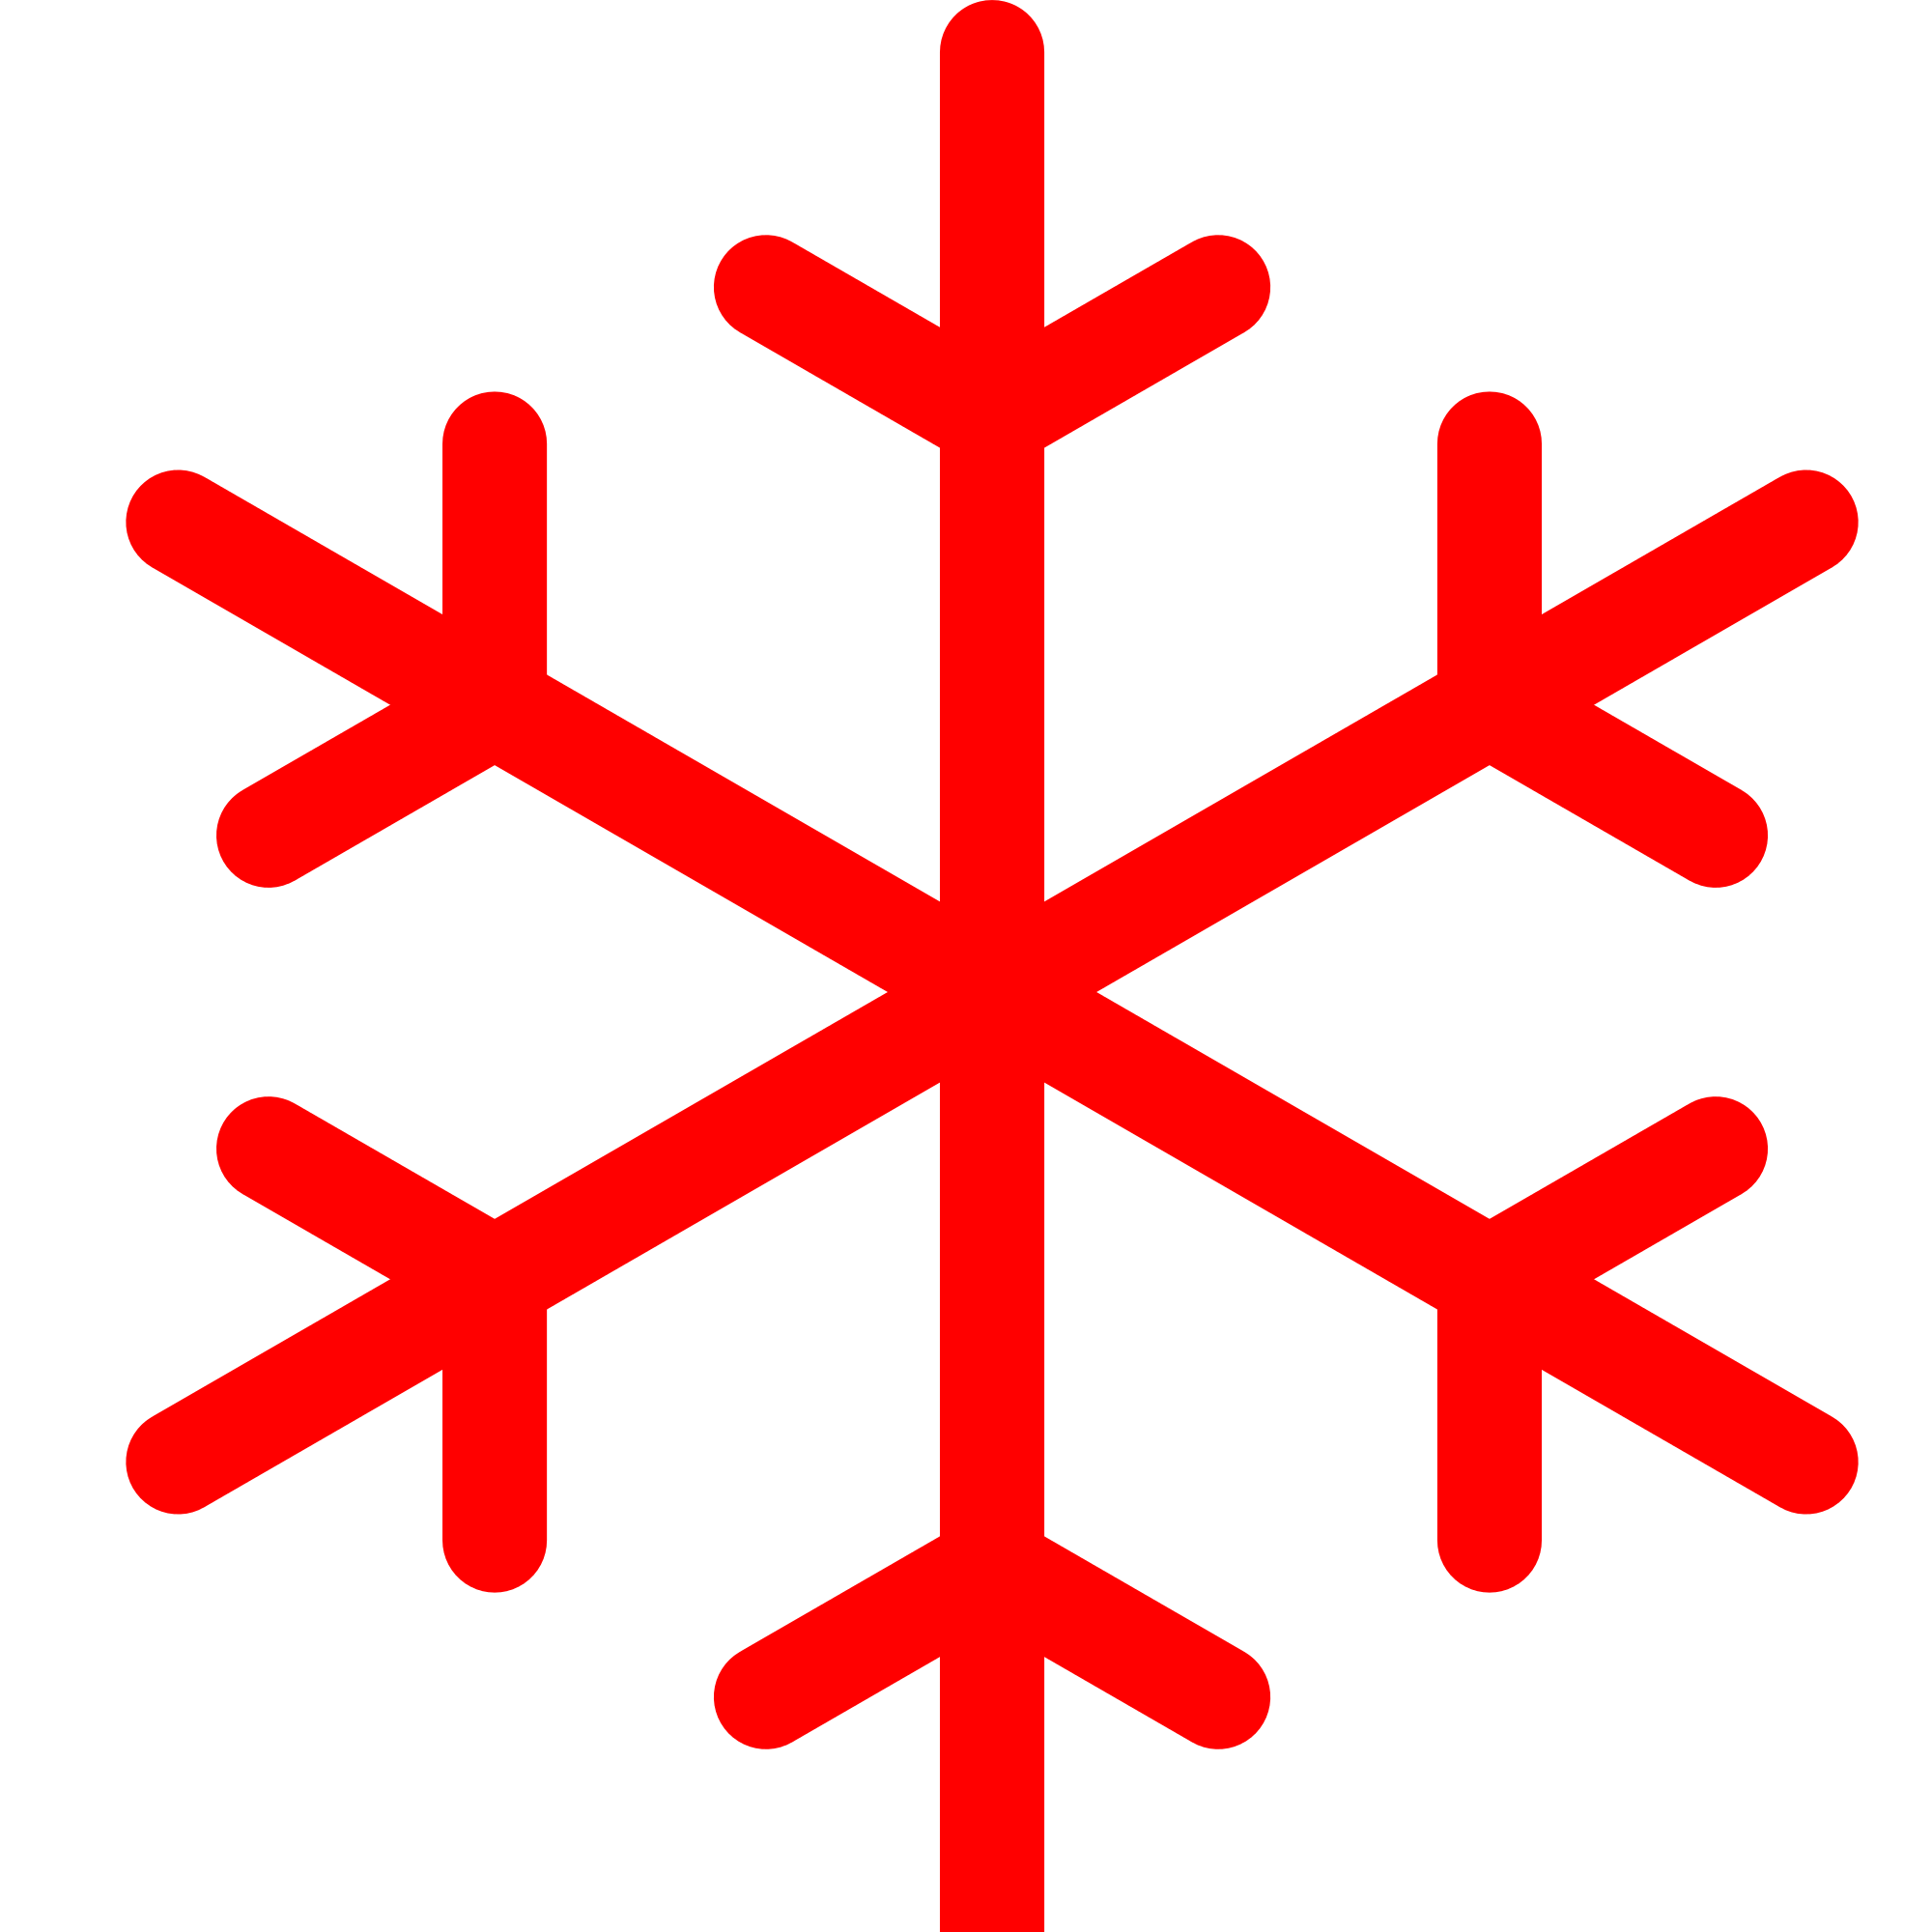 png free library snowflake animation